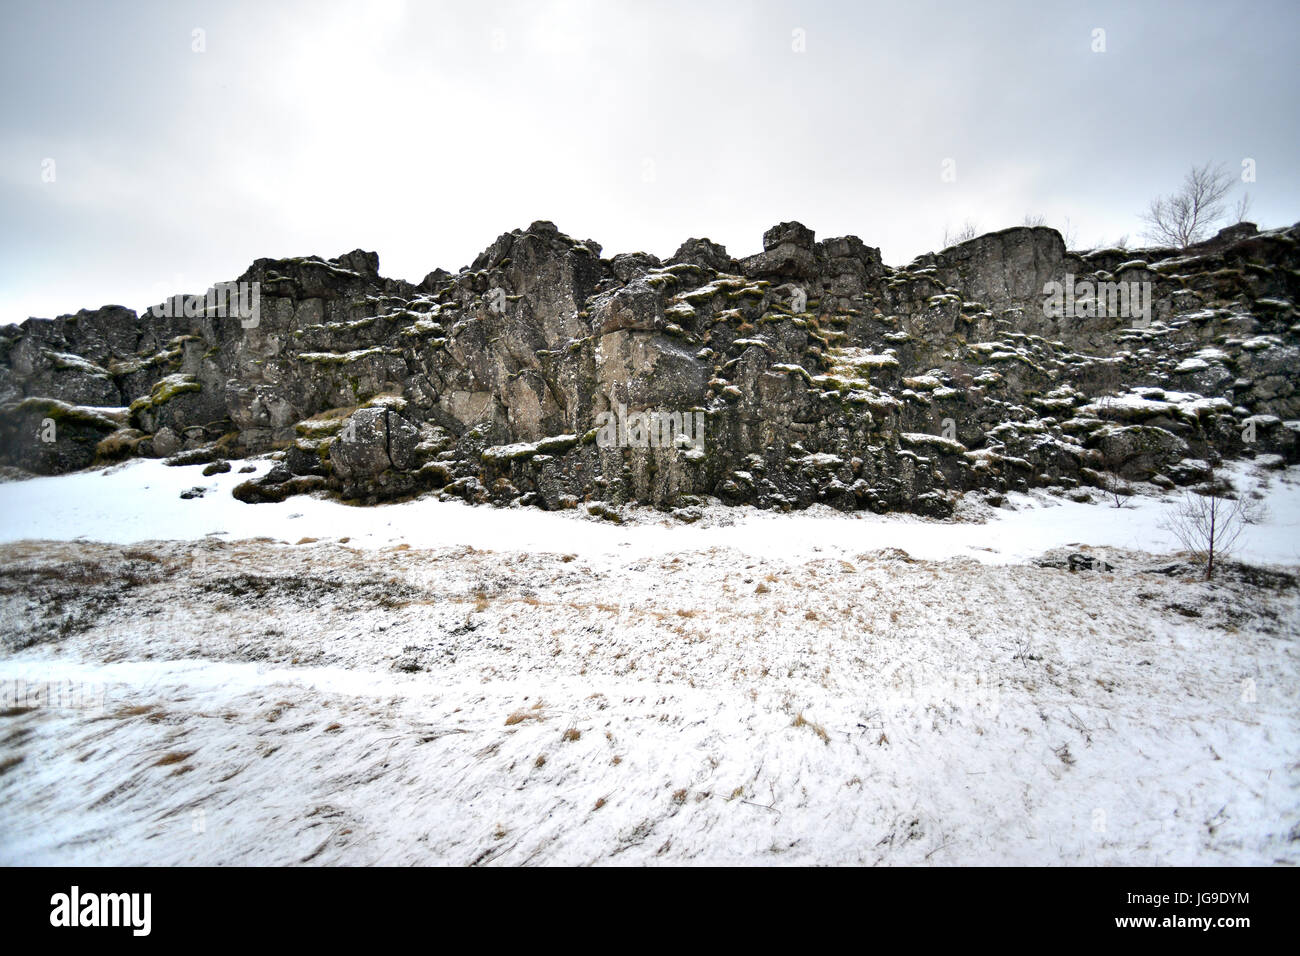 Þingvellir (Thingvellir) national park, Iceland, the boundary of the Eurasian and North American tectonic plates - Stock Image